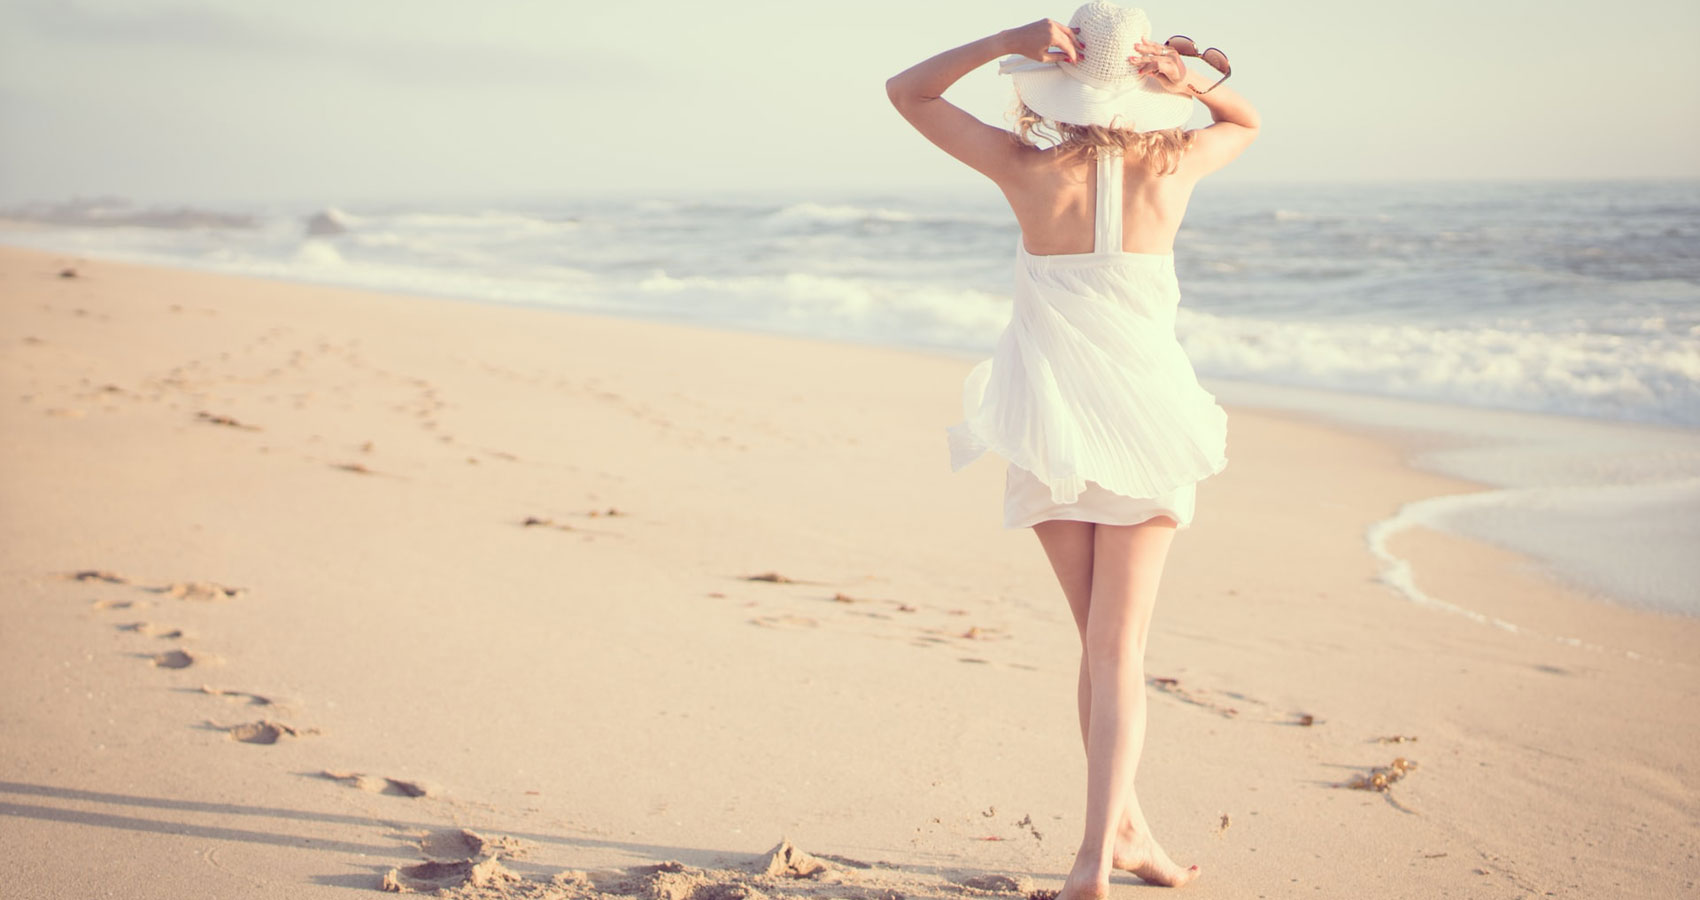 ODE TO THE BEACH, poetry by Dianne Moritz at Spillwords.com